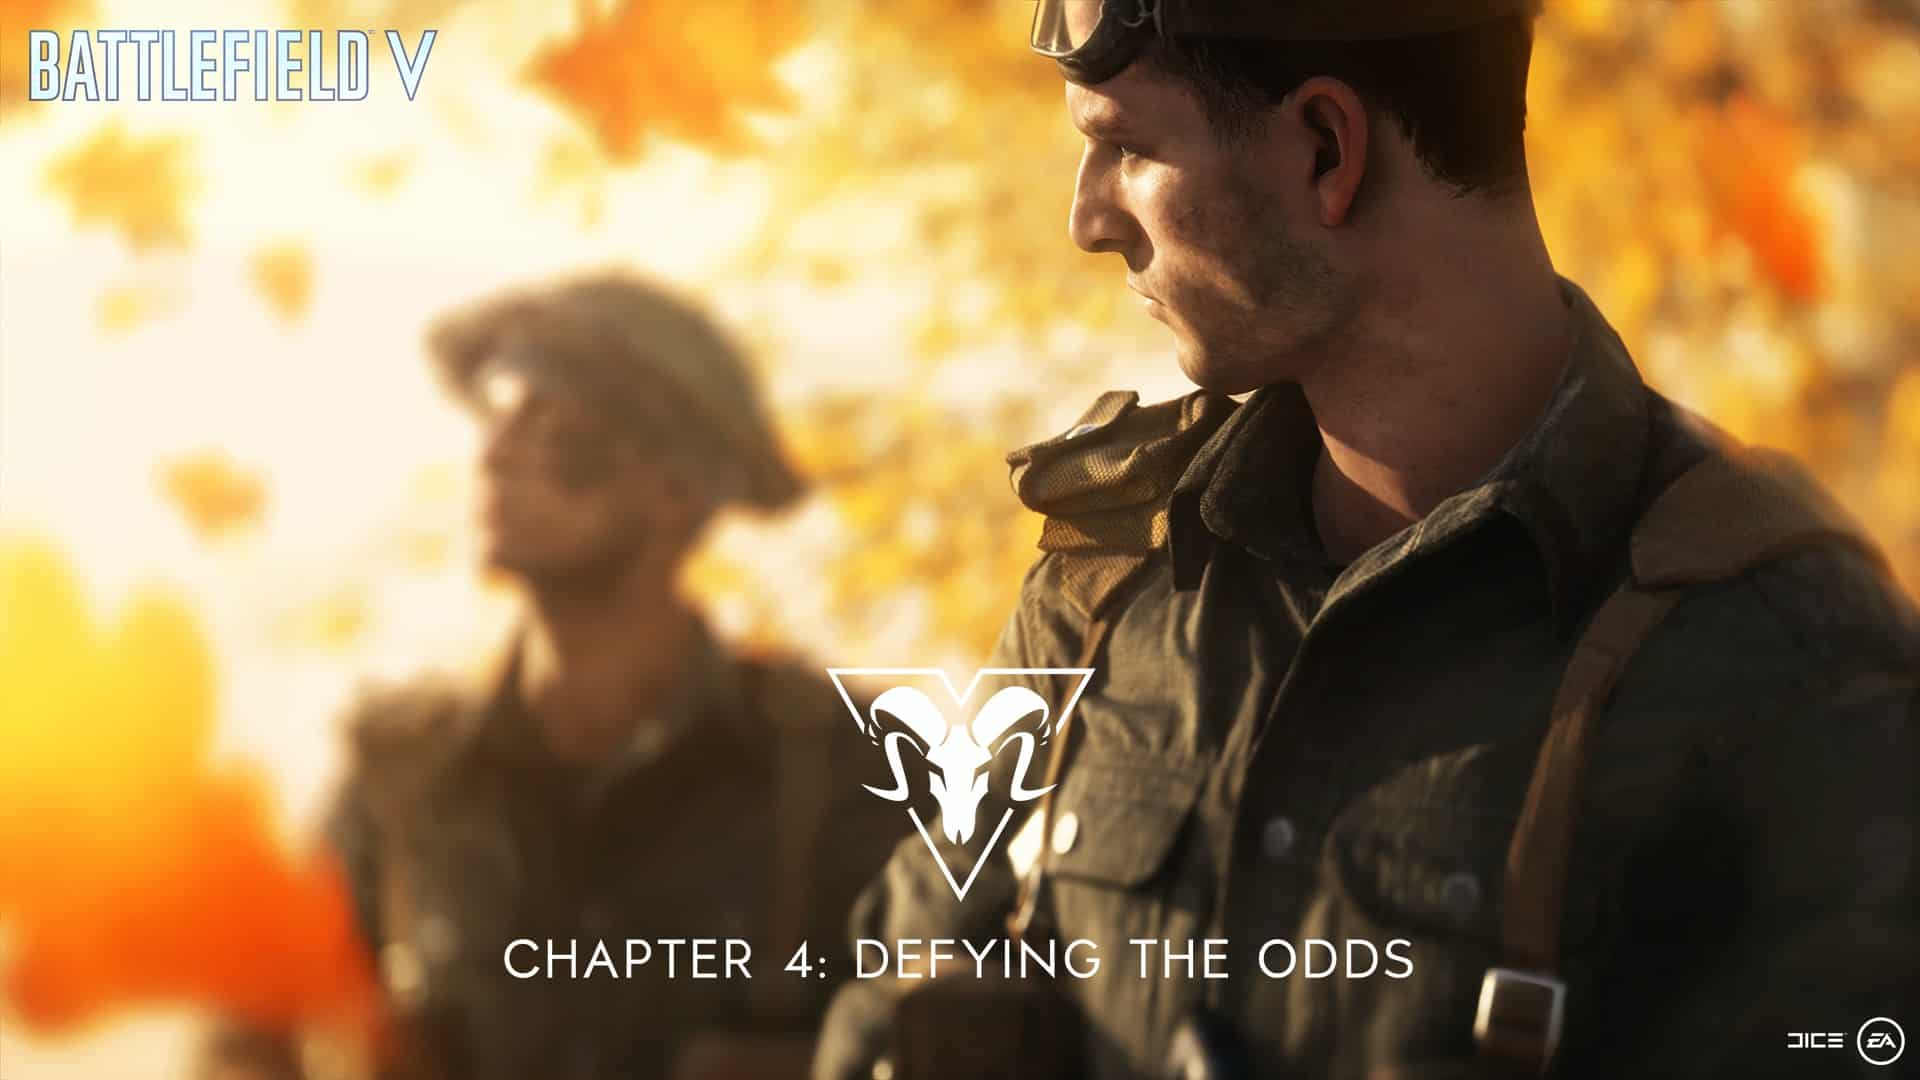 TRAILER: New Maps Coming In Battlefield V Chapter 4: Defying The Odds